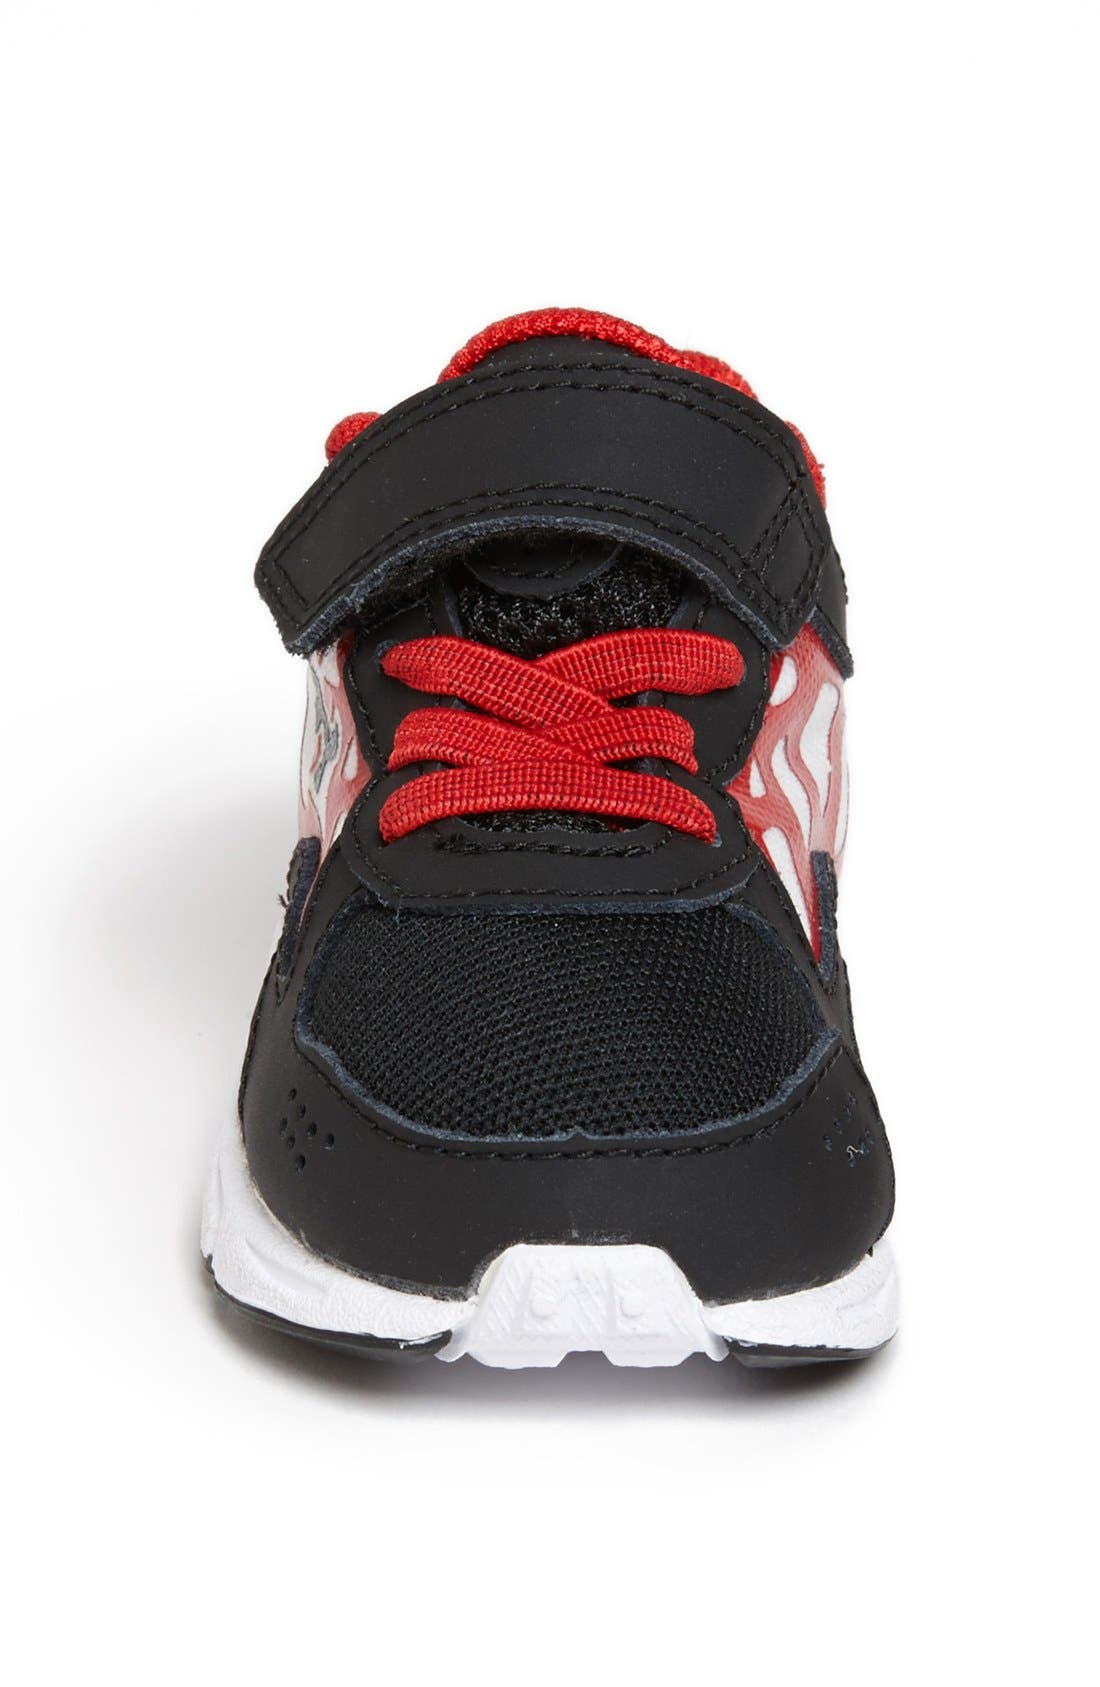 Alternate Image 3  - Under Armour 'Ignite' Sneaker (Baby, Walker & Toddler)